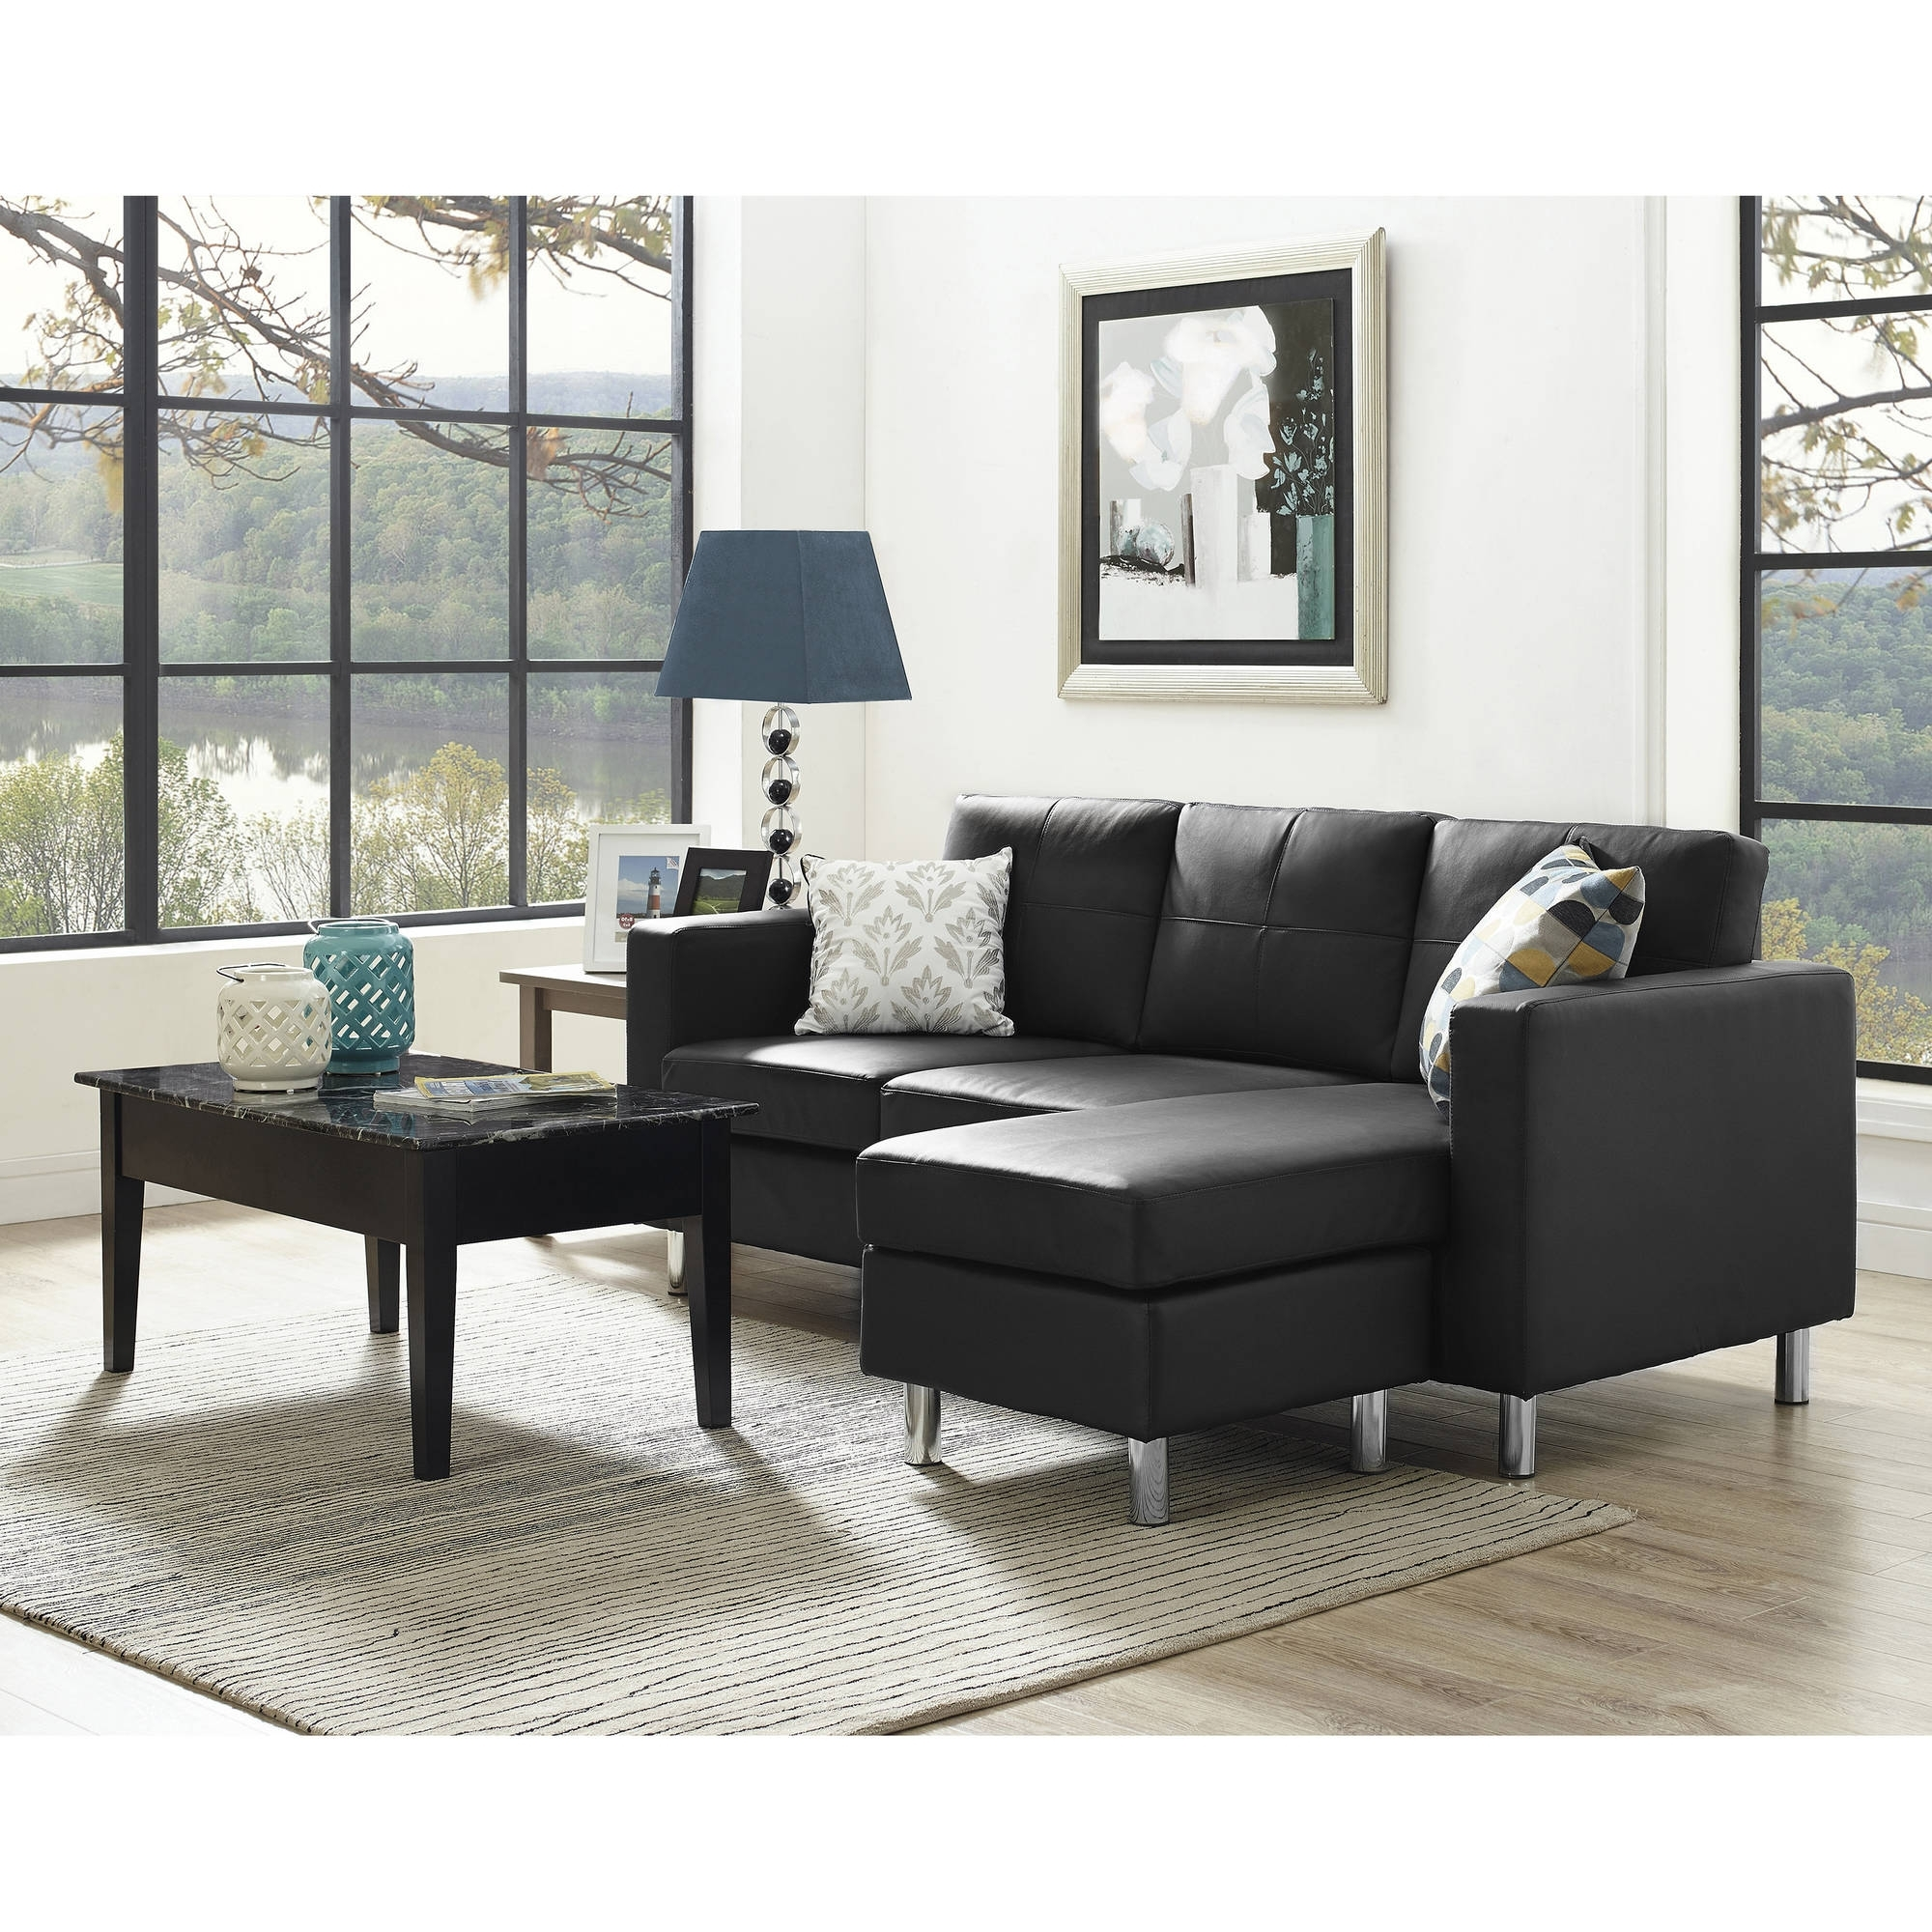 Recent Dorel Living Small Spaces Configurable Sectional Sofa, Multiple With Mini Sectional Sofas (View 3 of 20)